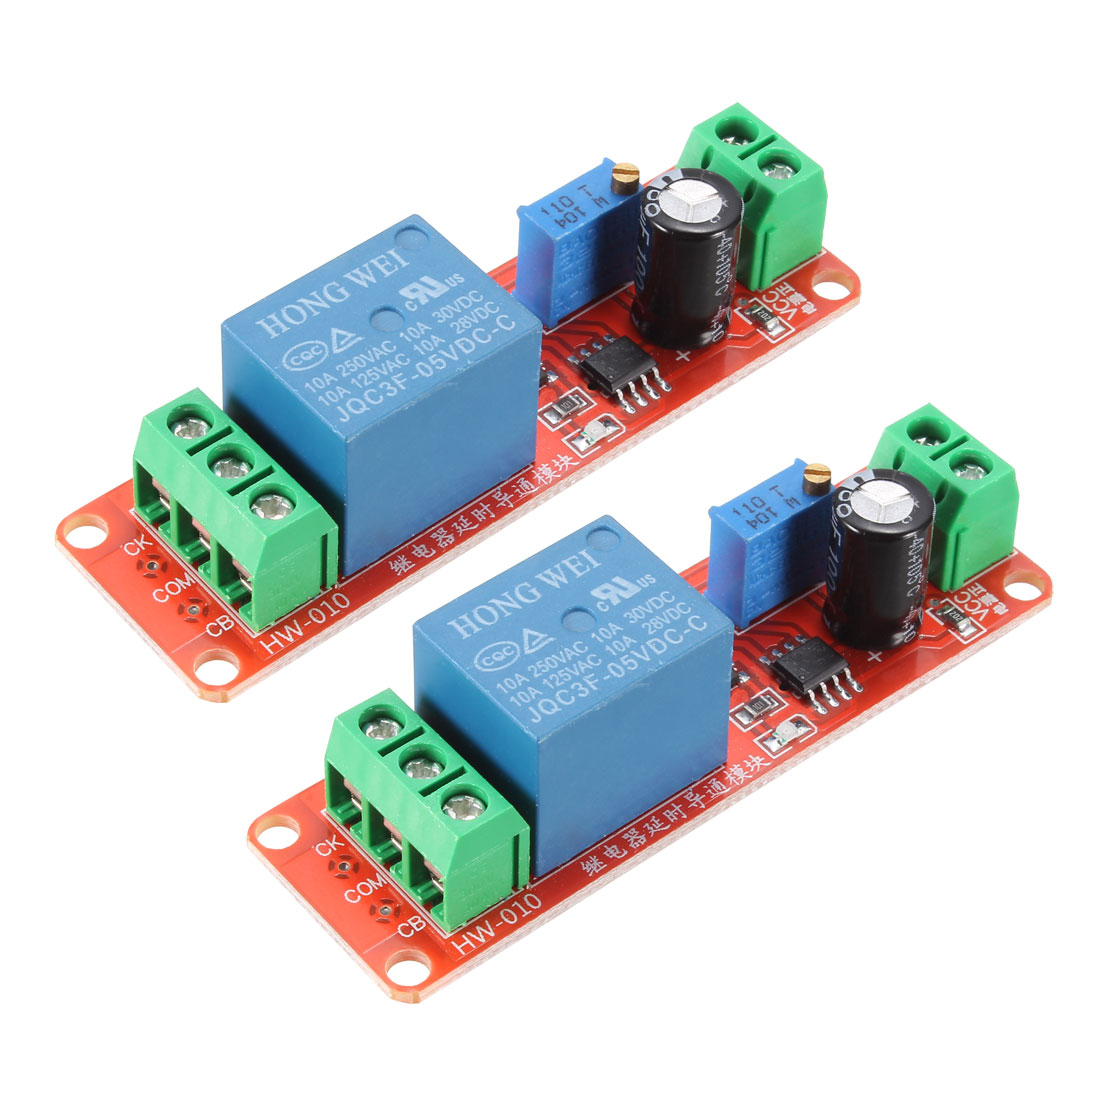 DC5V NE555 Module Delay Timer Switch Adjustable Module for 0-10s 2pcs